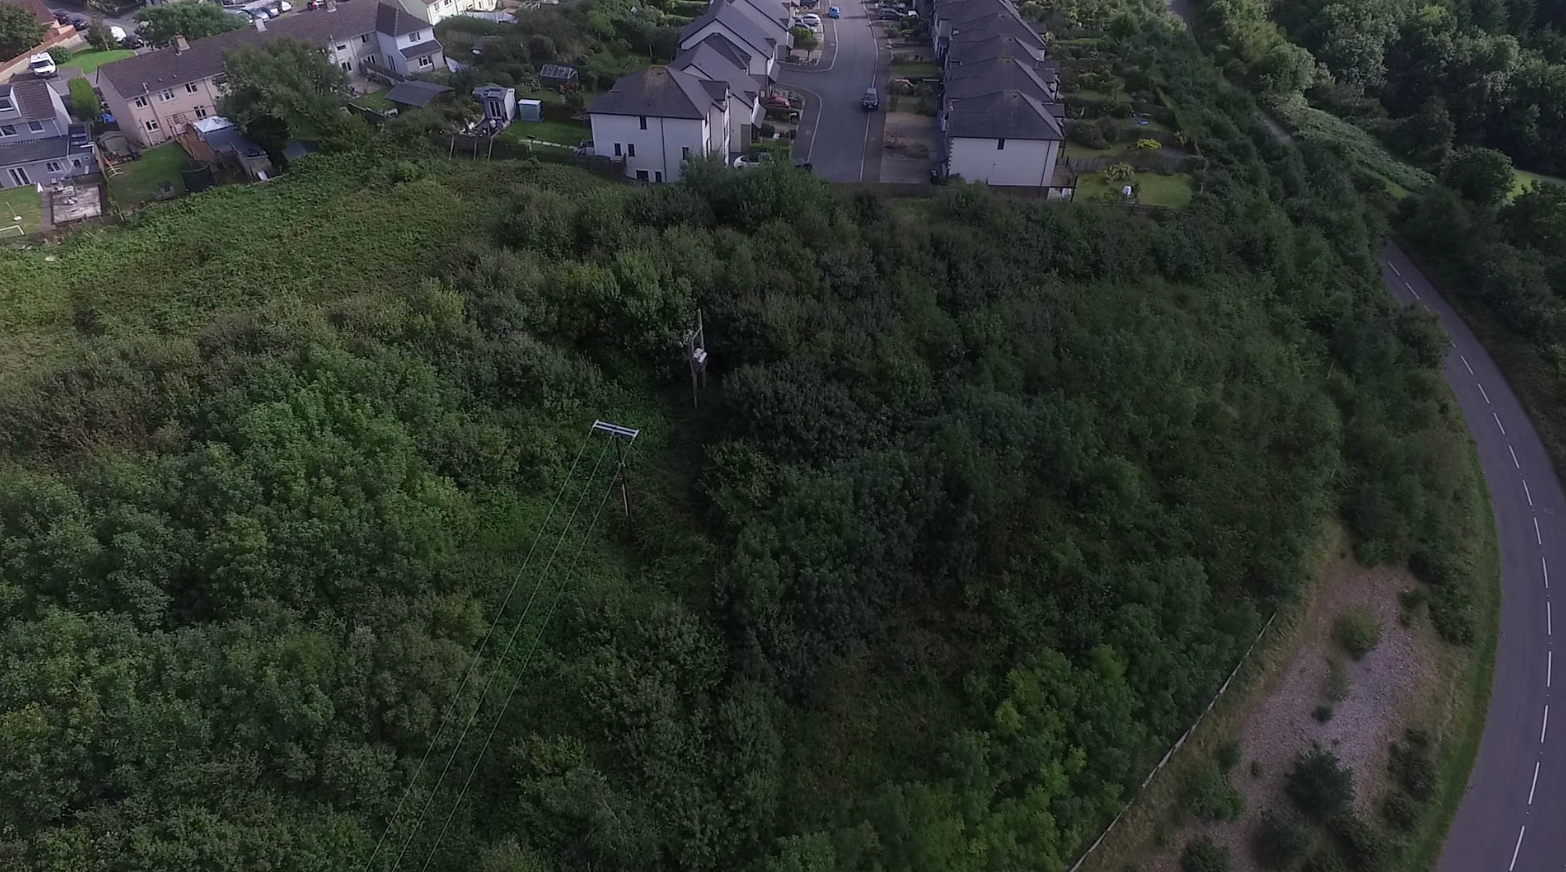 Residents have said they used to enjoy the woodland area, which several houses backed onto. Credit: SWNS